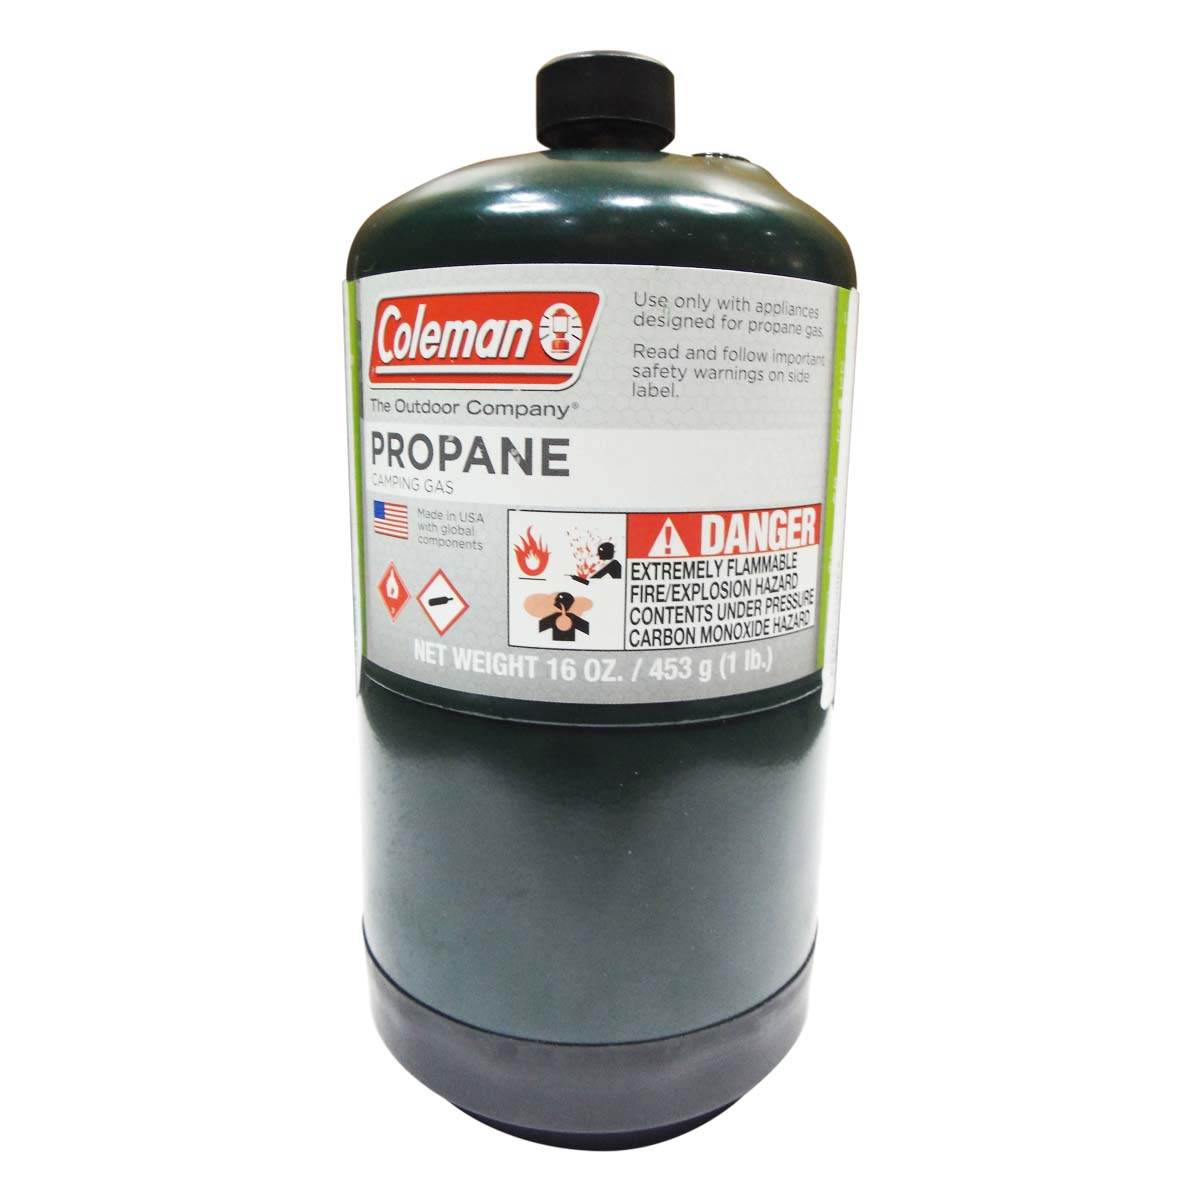 Gas Propano 453 G Ancho 5103a164t Coleman